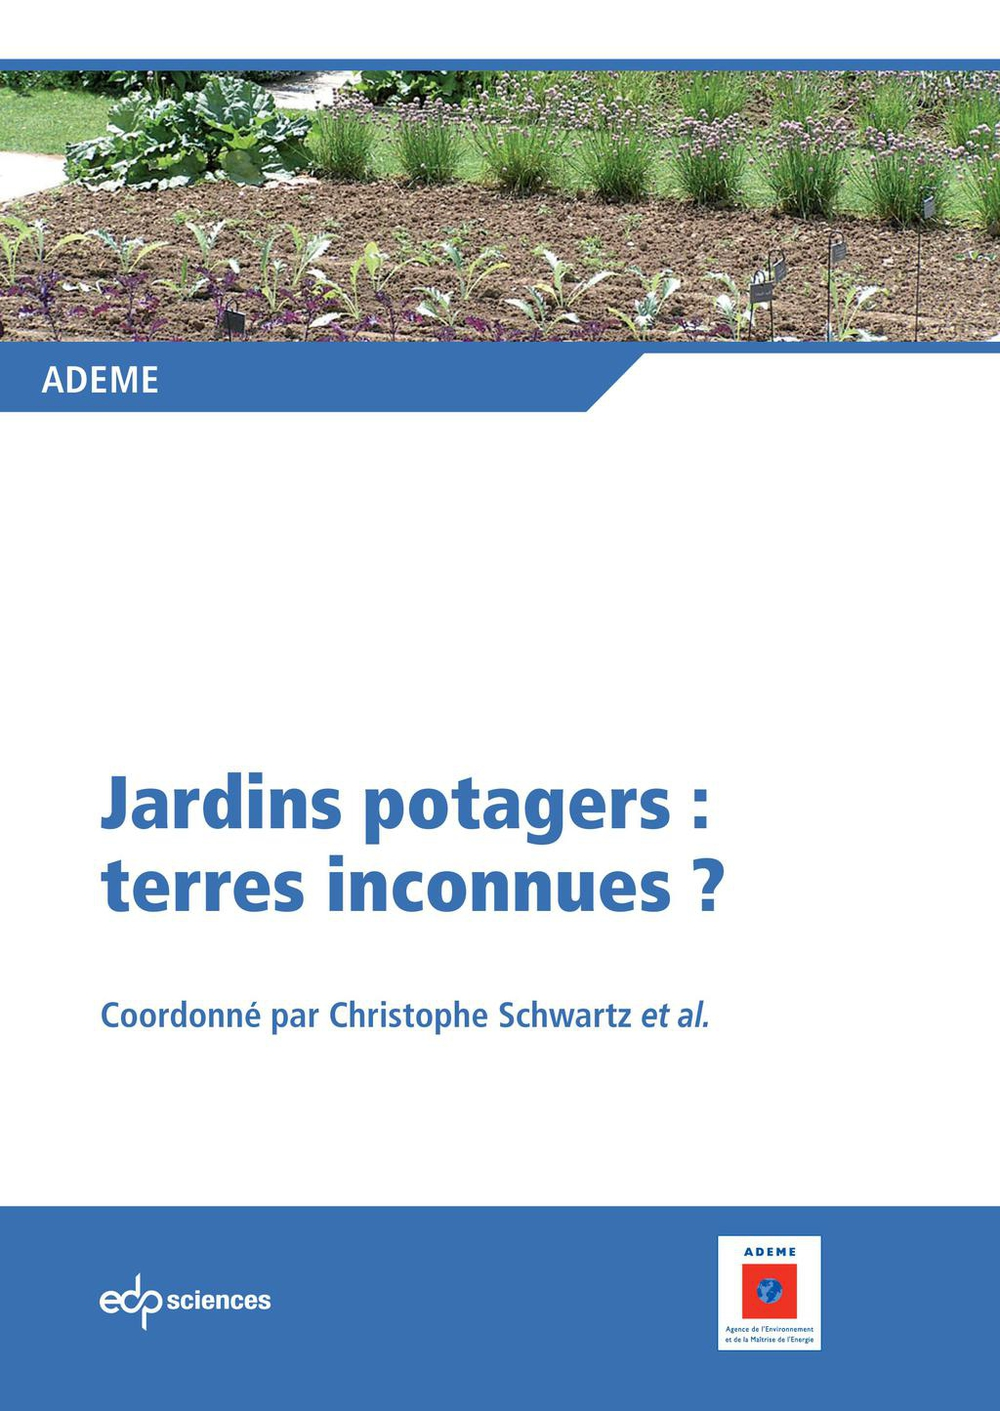 Jardins potagers: terres inconnues